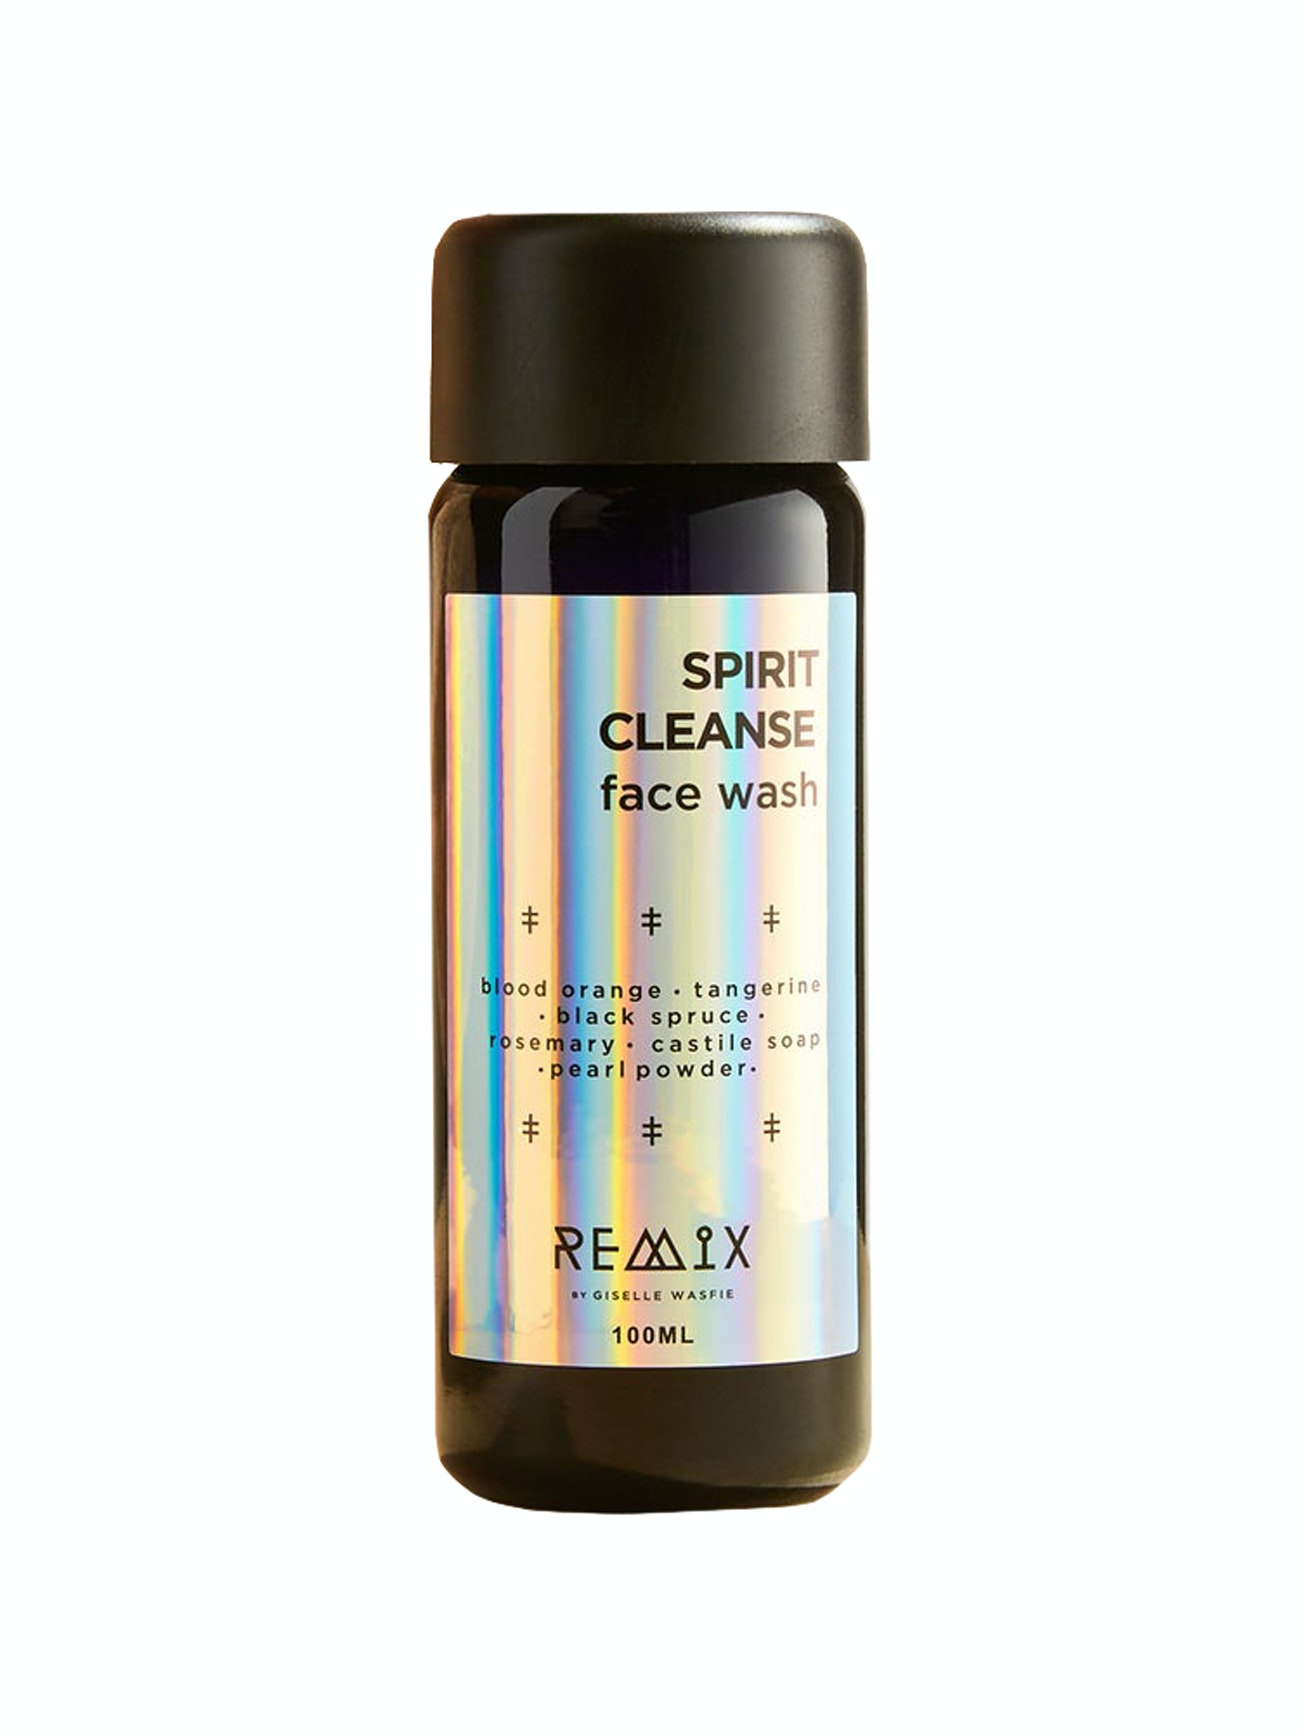 Remix by Giselle Wasfie Spirit Cleanse Face Wash